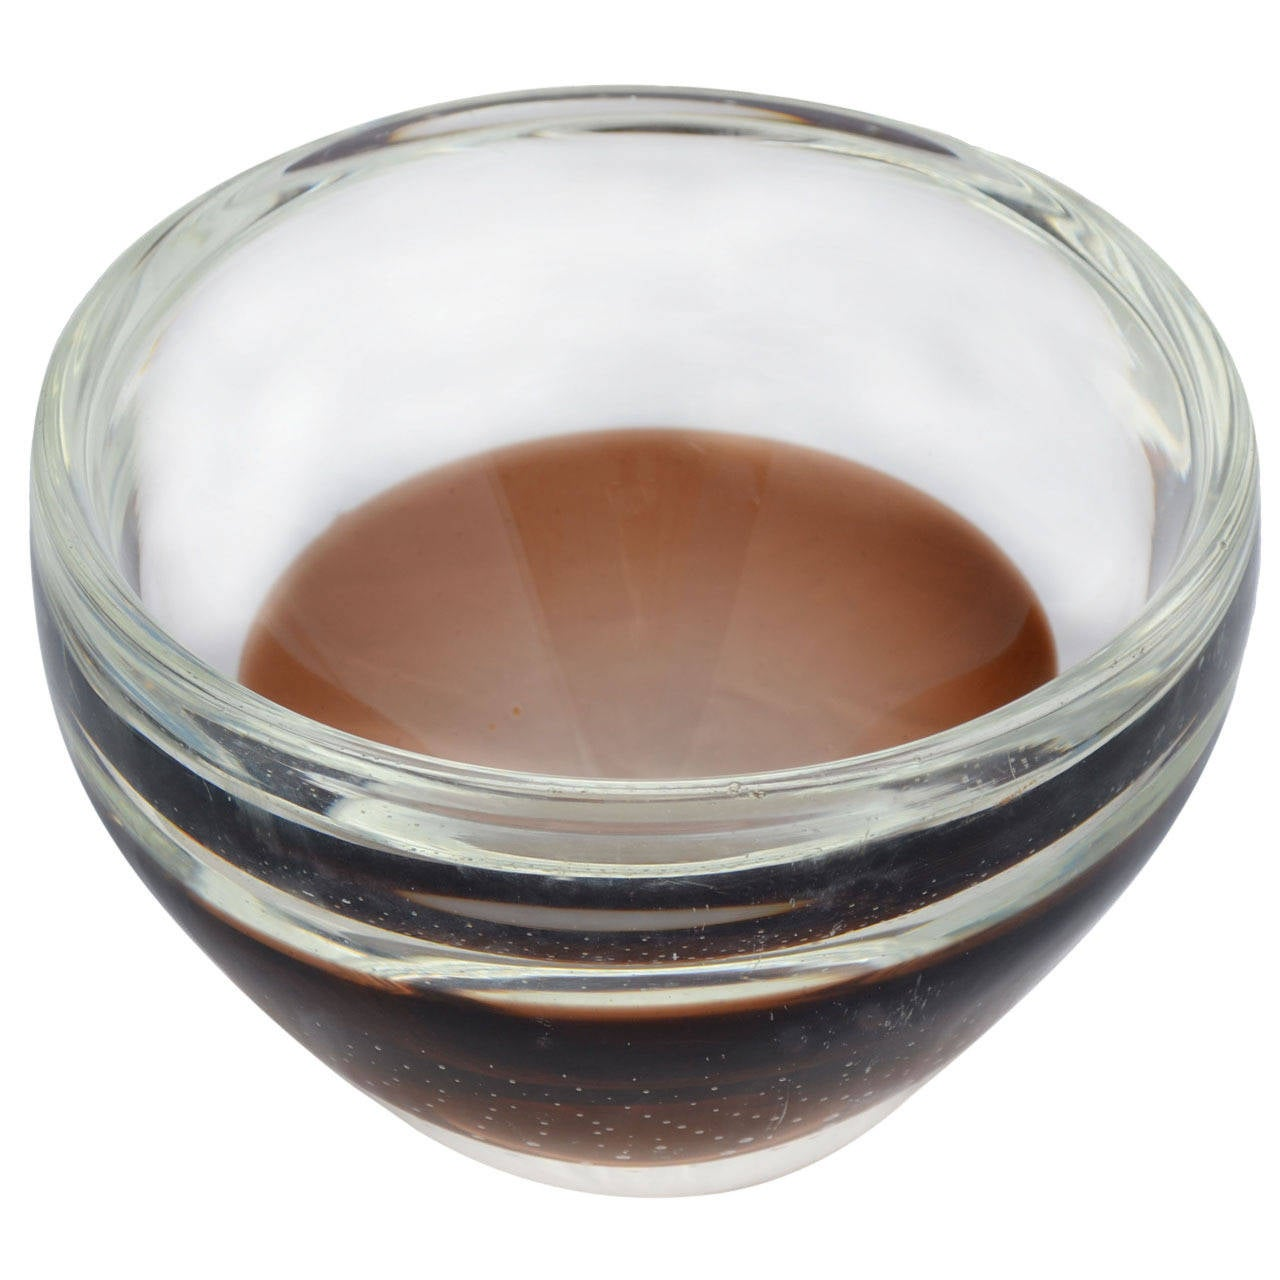 Kosta Boda Controlled Bubble Amber and Clear Bowl